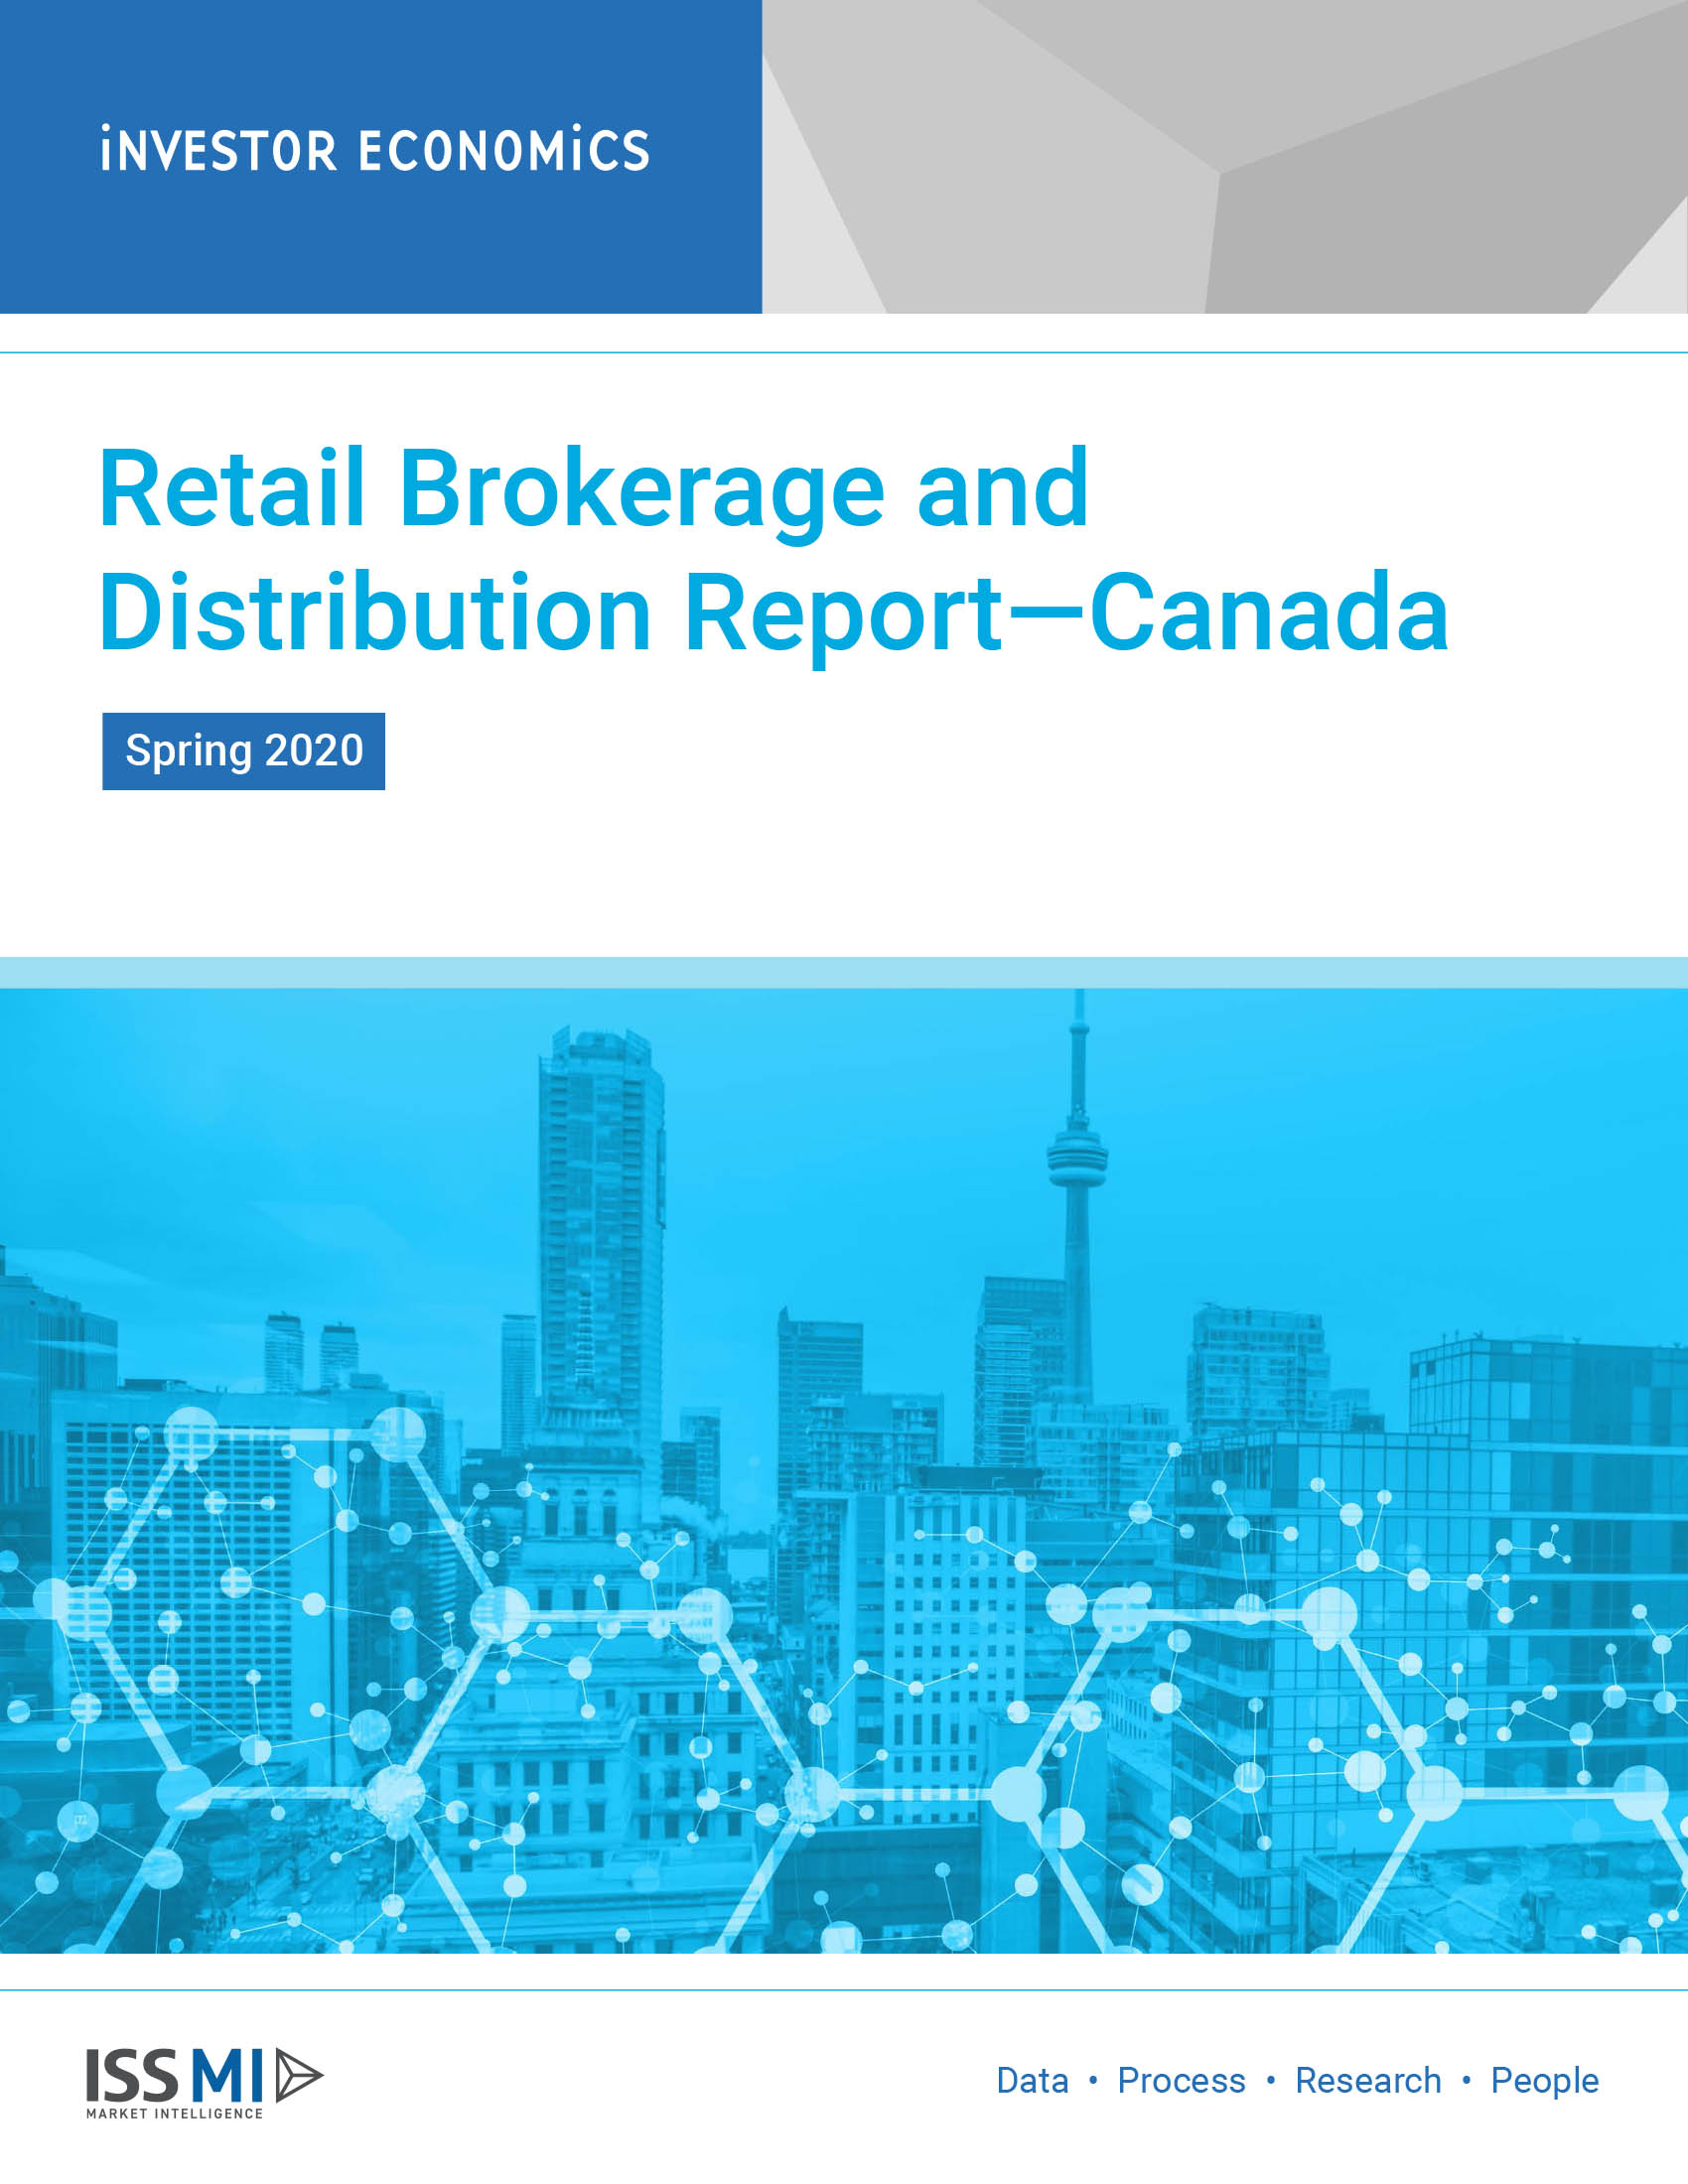 Retail Brokerage and Distribution Report—Canada Spring 2020